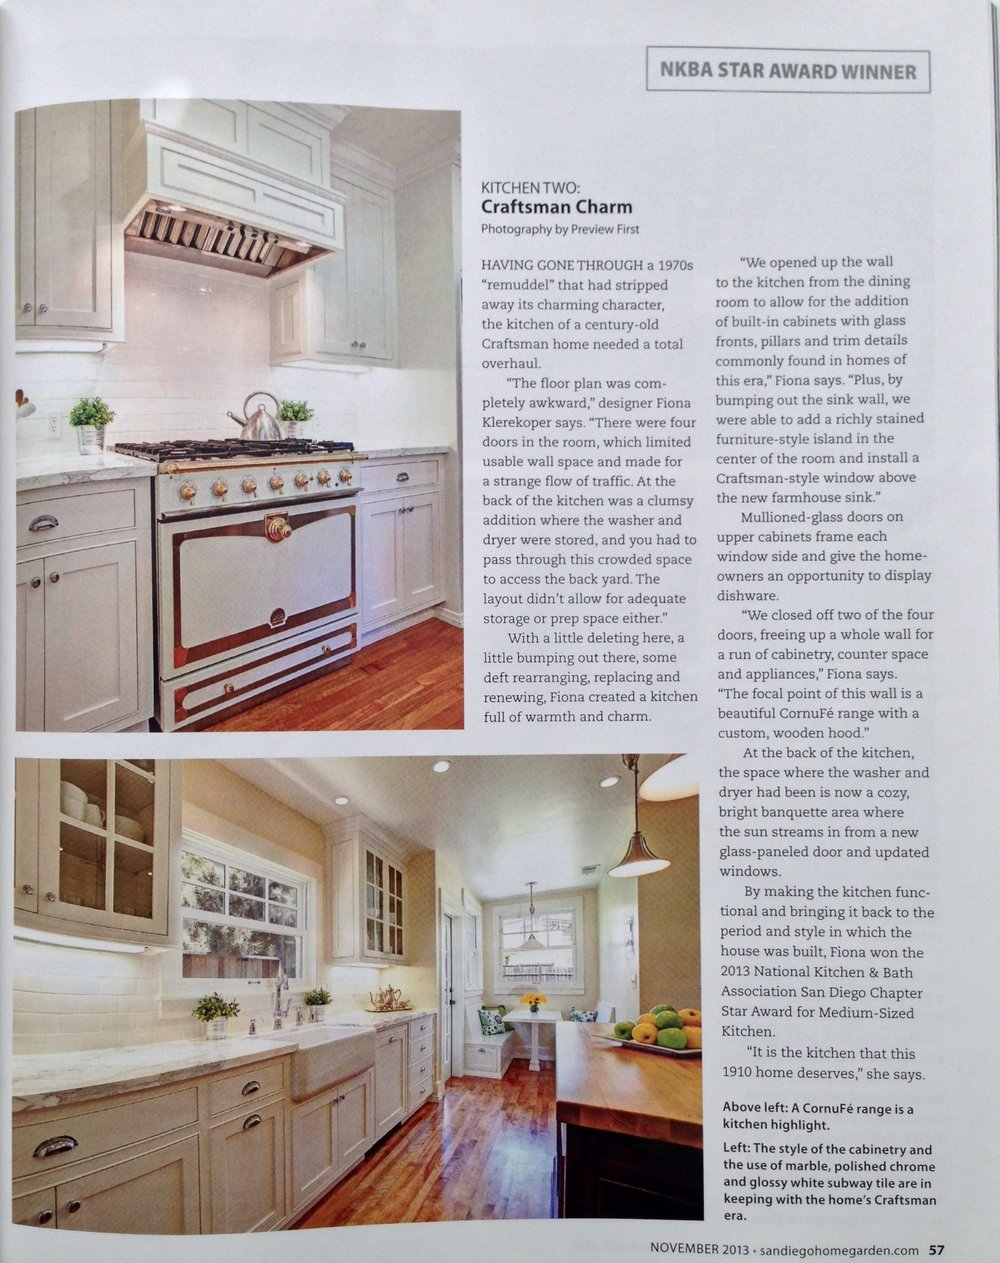 This Kitchen Was Featured In The November 2013 Issue Of San Diego  Home/Garden Lifestyles As Winner Of The National Kitchen And Bathroom  Association ... Part 95